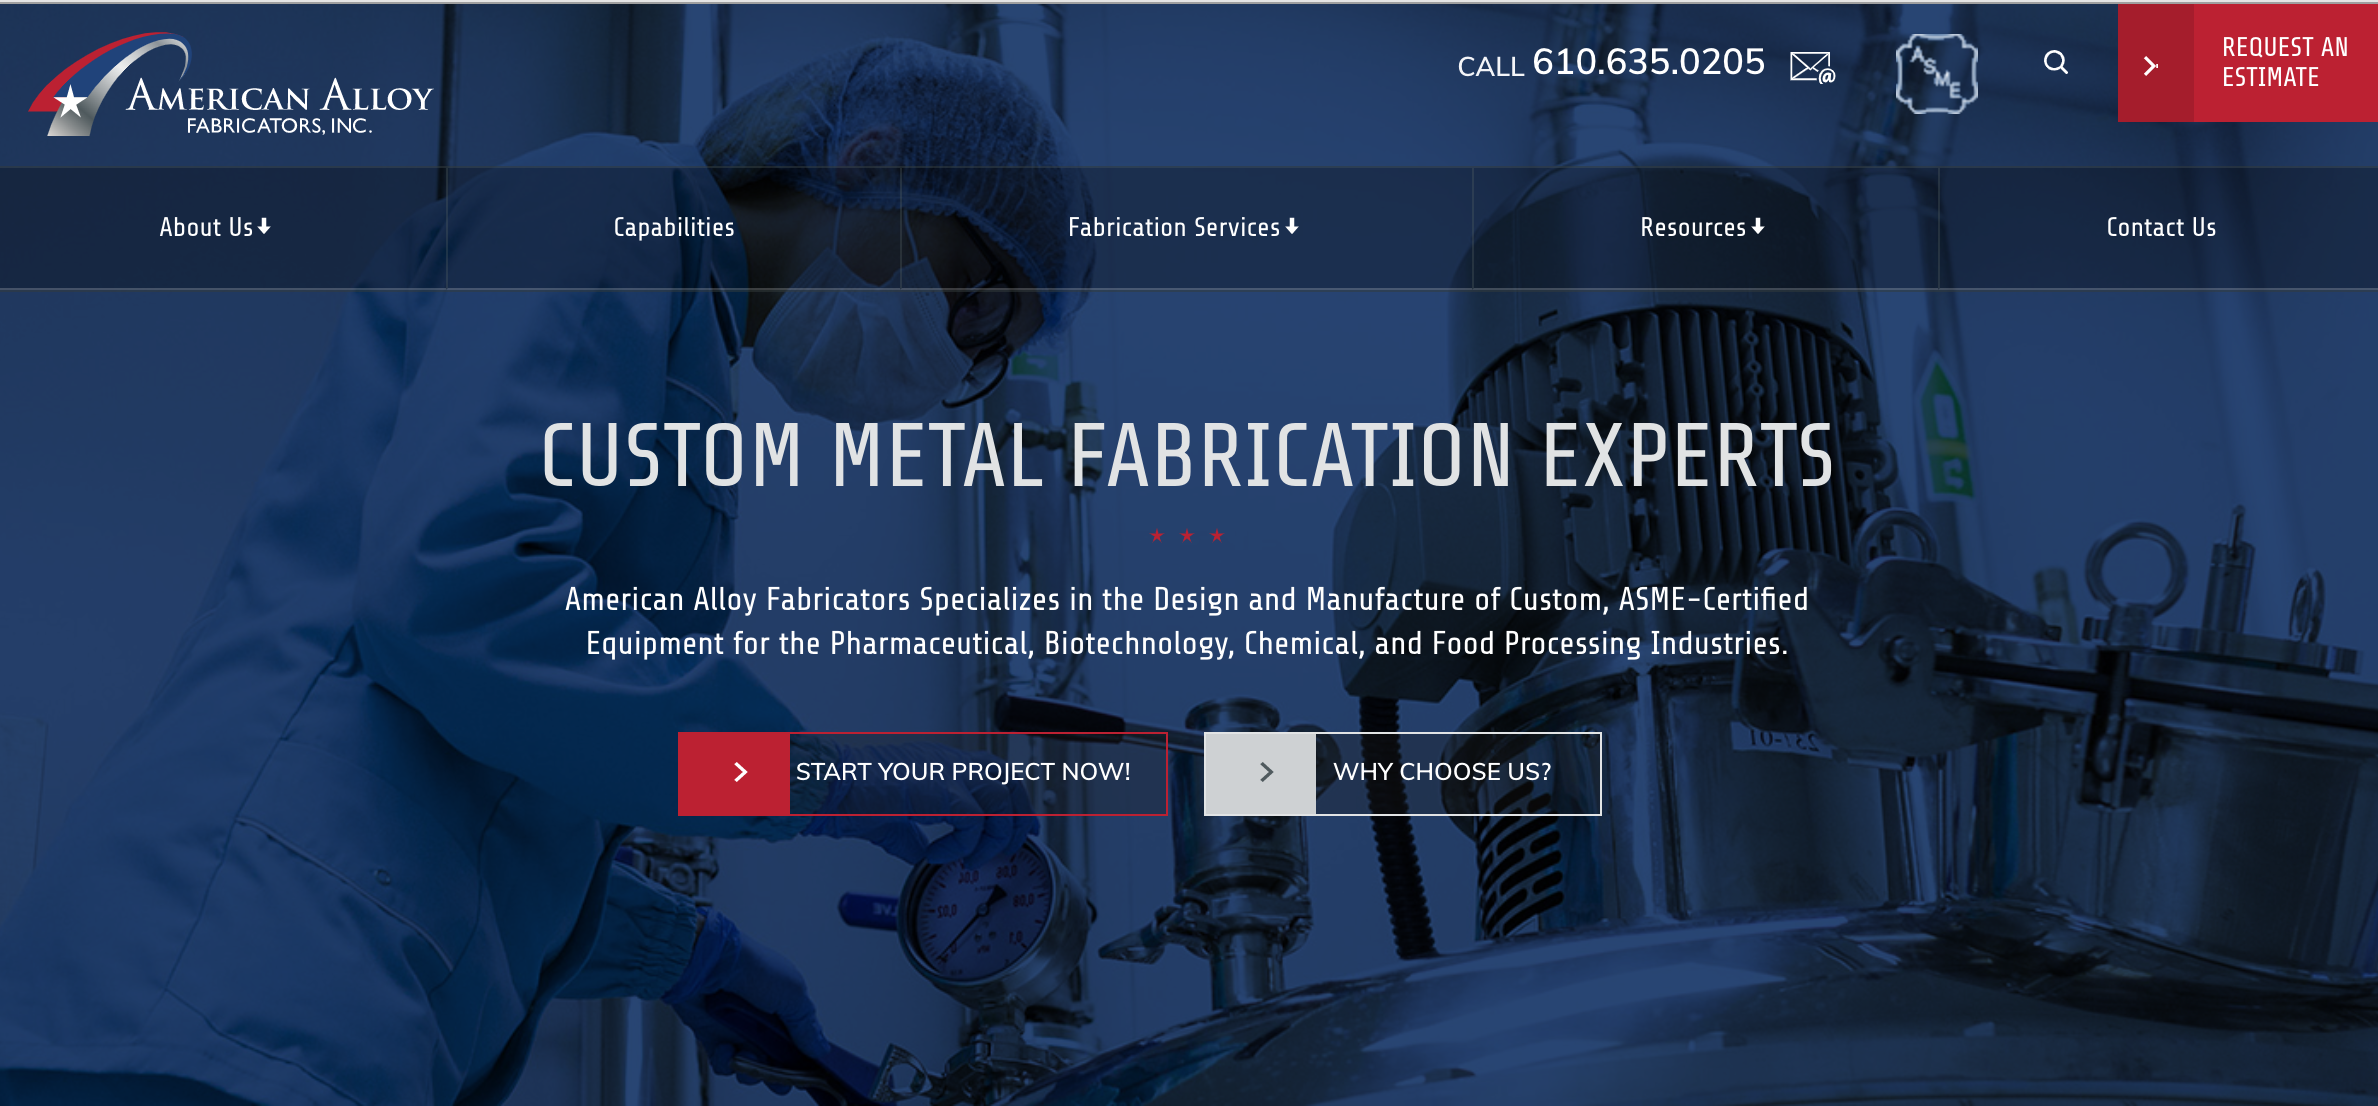 American Alloy - Industrial Website Example